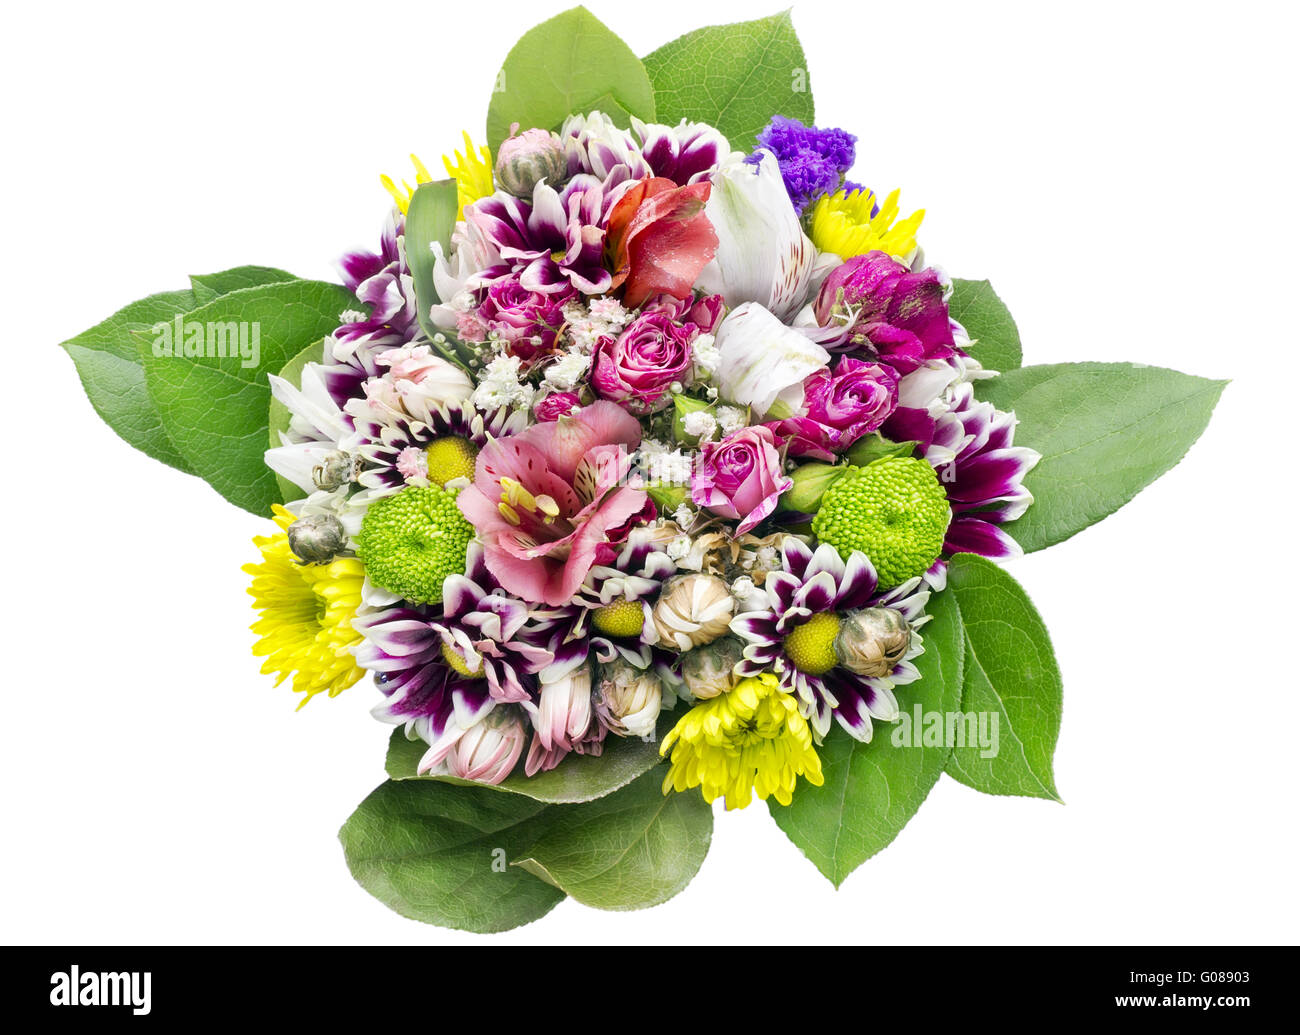 Flowers bouquet for girl birthday stock photo royalty free image flowers bouquet for girl birthday izmirmasajfo Image collections